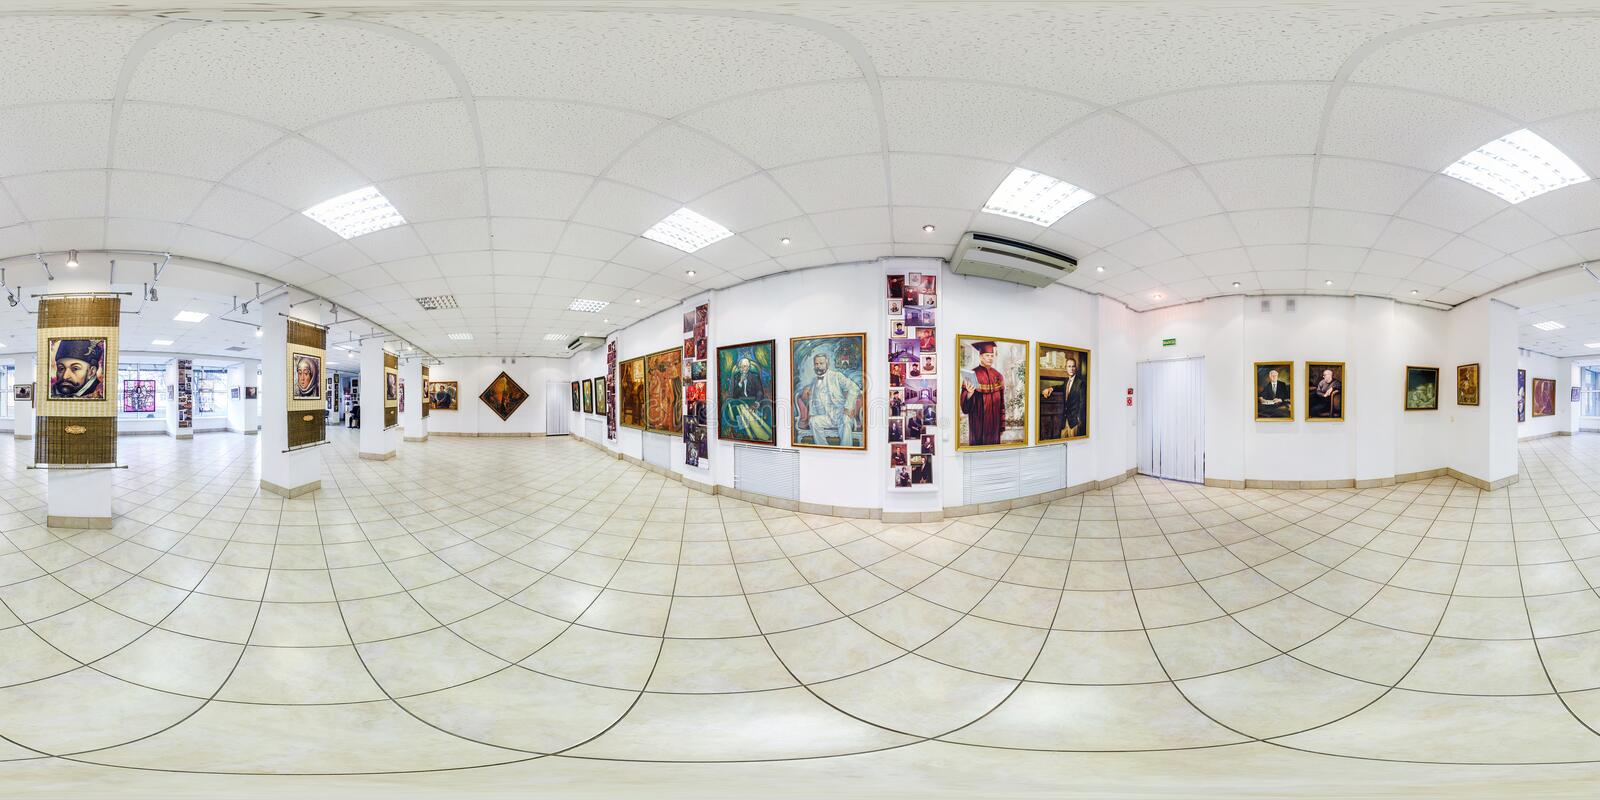 GRODNO, BELARUS - SEPTEMBER, 2018: Full seamless spherical panorama 360 degrees angle view in interior of contemporary art stock photography